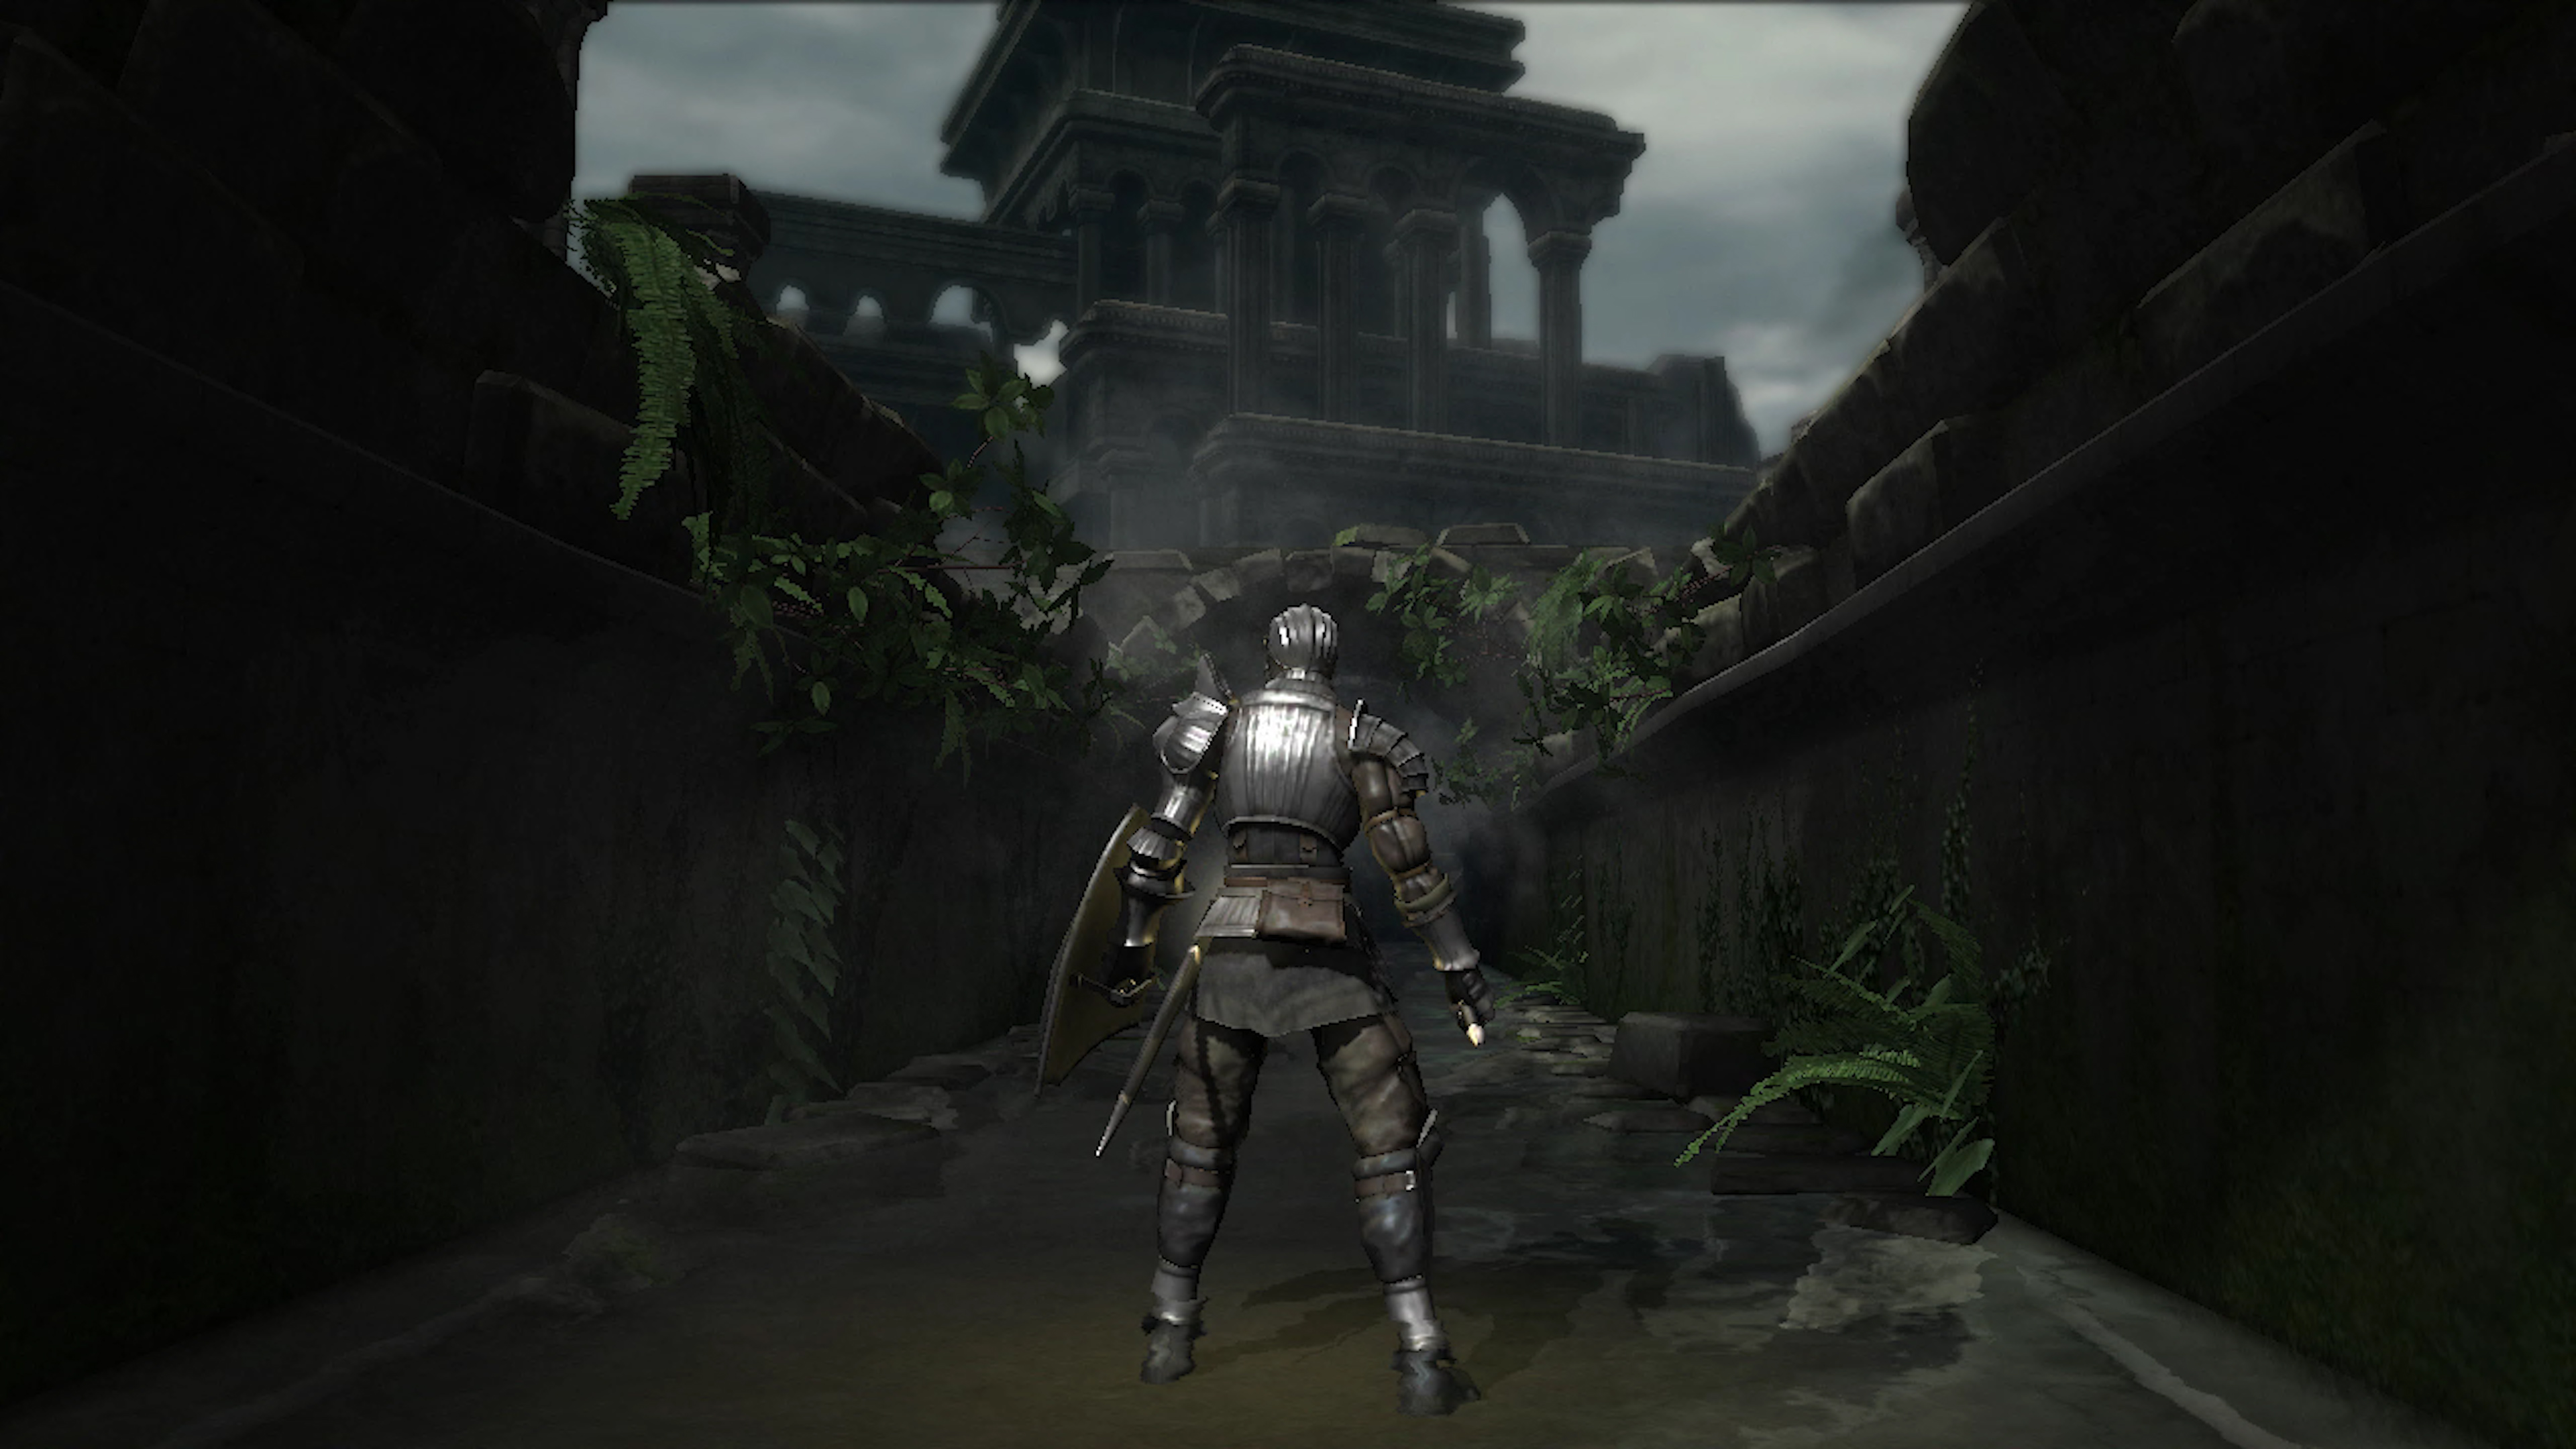 Demon S Souls Ps5 A Remake Worth Waiting A Generation For Eurogamer Net